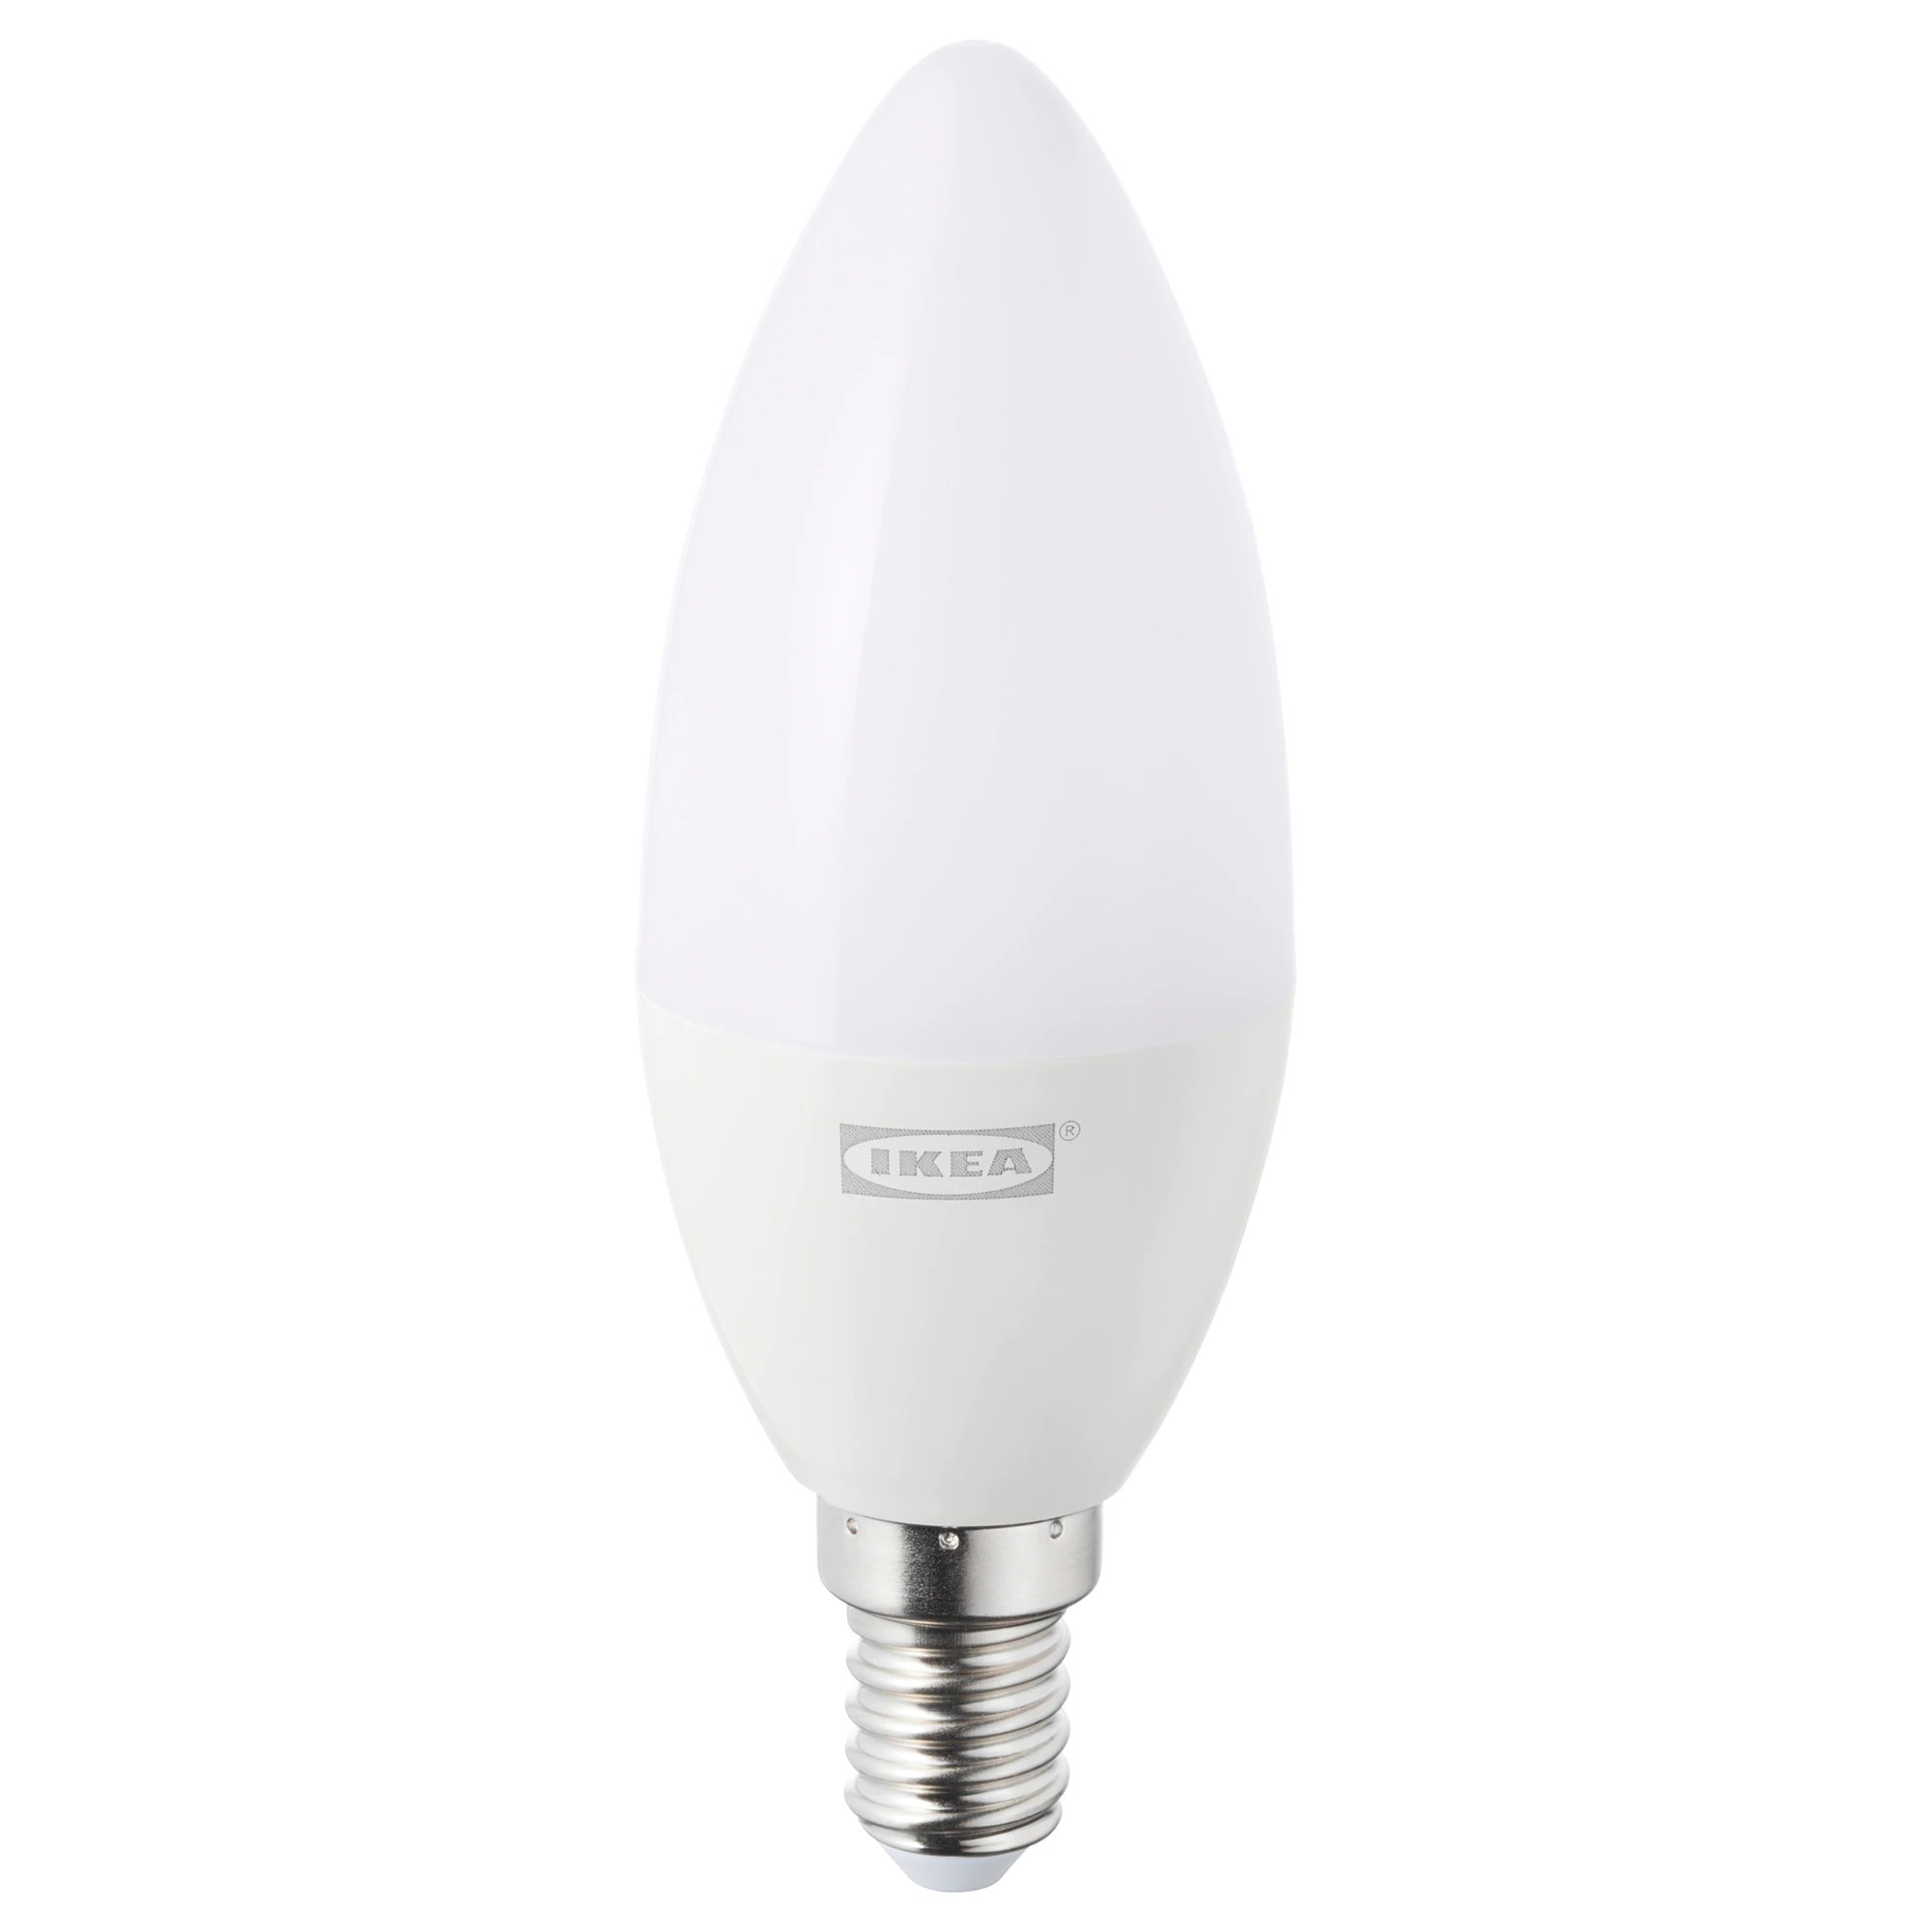 Ikea Tradfri TrÅdfri Led Bulb E12 400 Lumen Wireless Dimmable Warm White Chandelier Opal